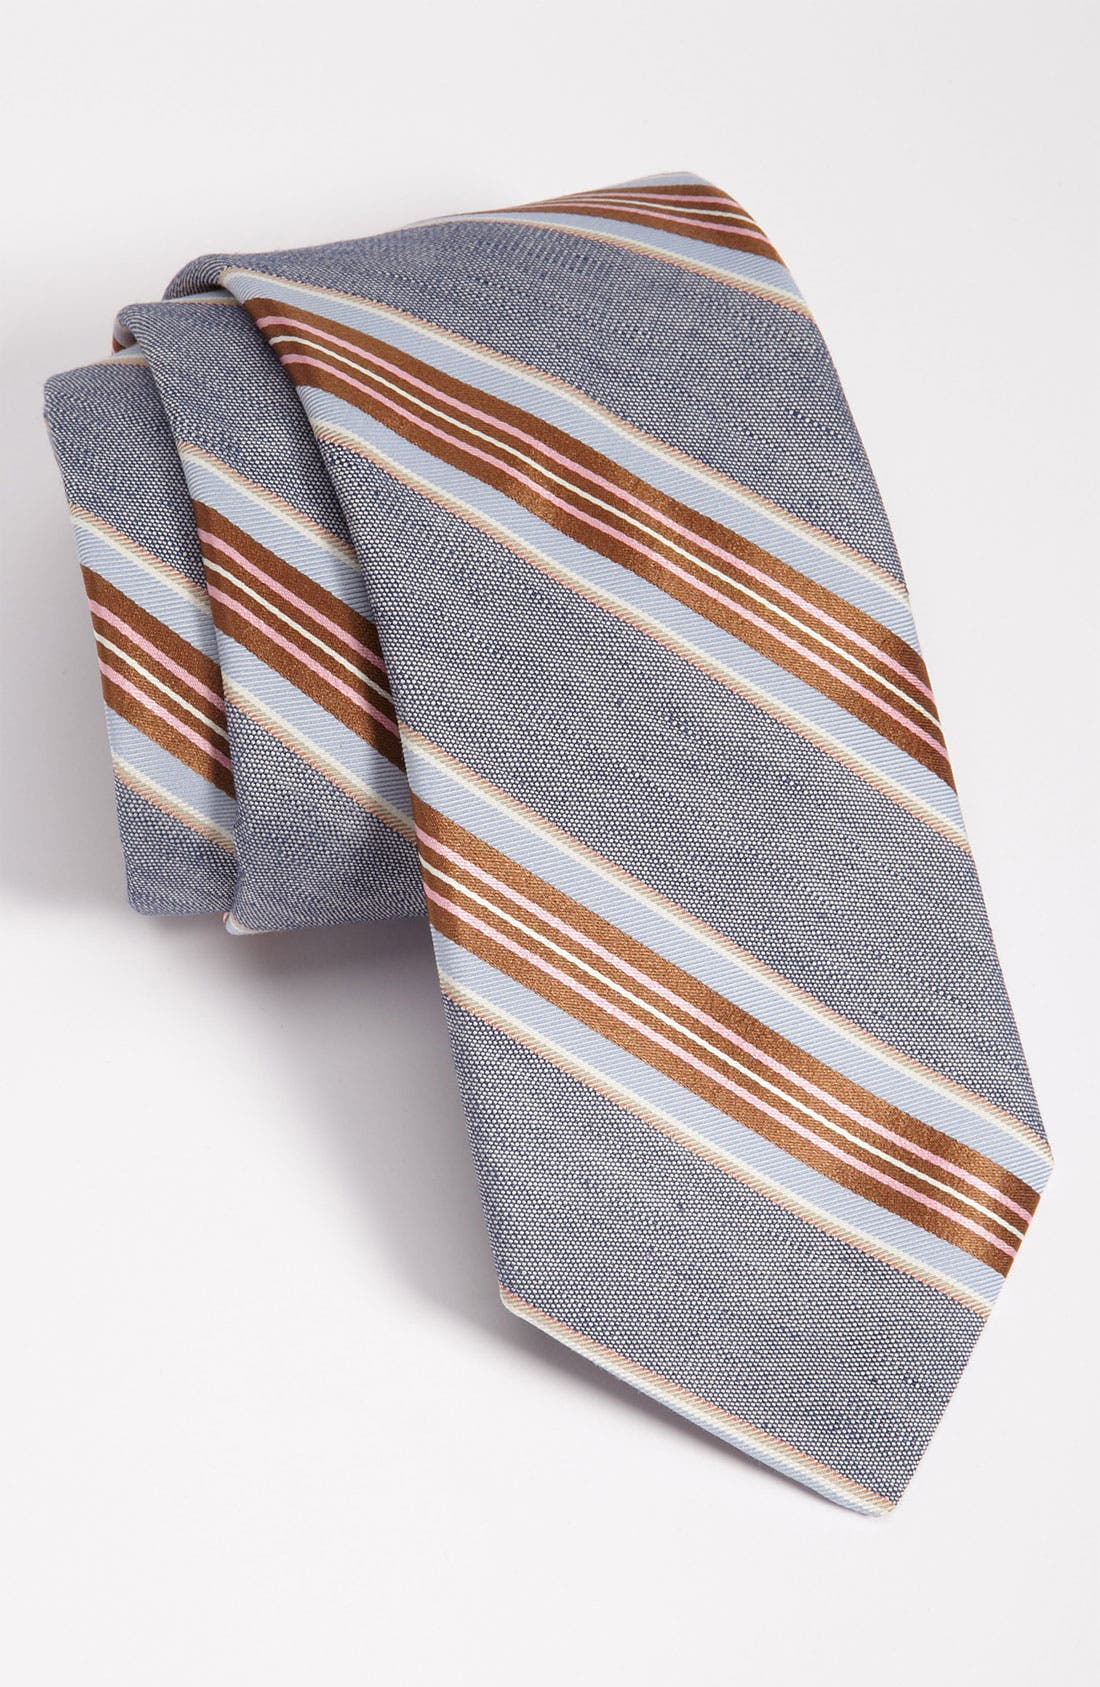 Alternate Image 1 Selected - John W. Nordstrom® Woven Tie